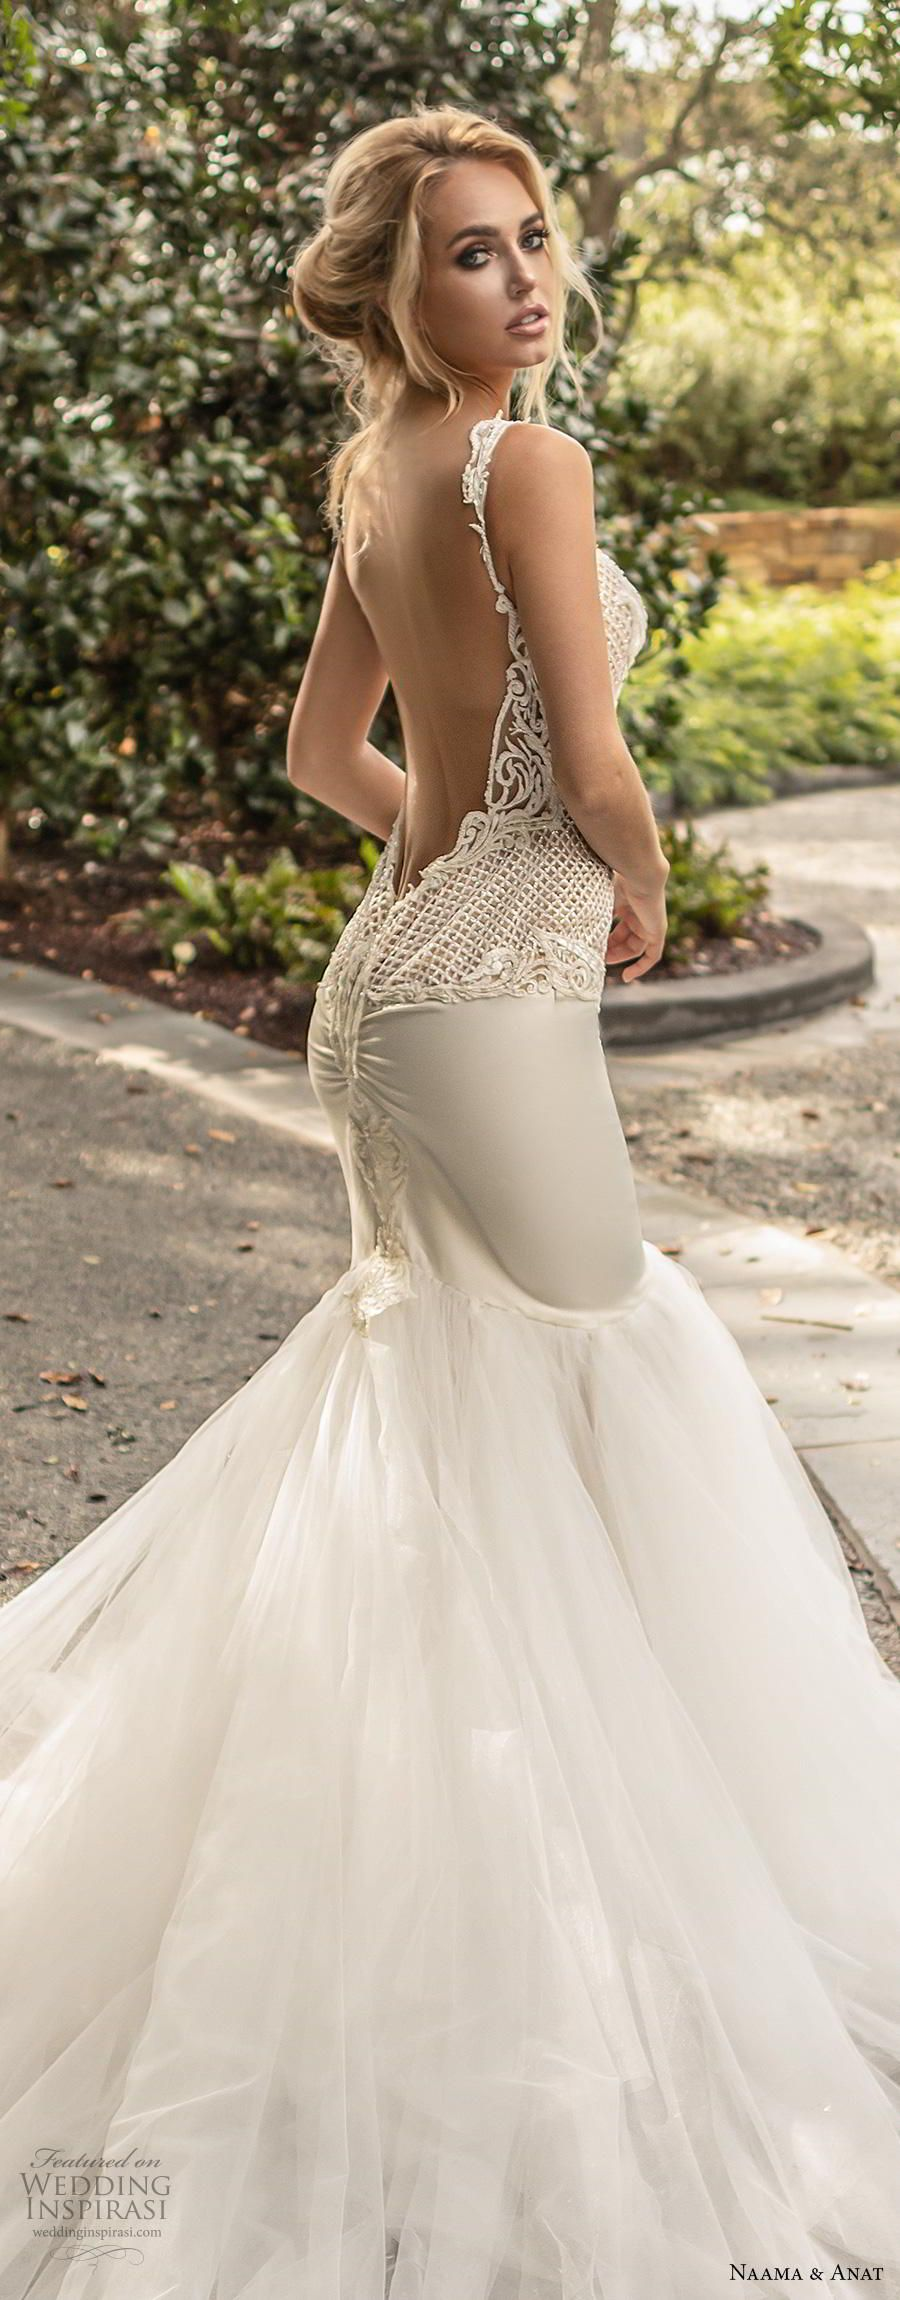 Wedding dress high neck open back  Naama u Anat Couture Wedding Dresses Fall  in   My guilty